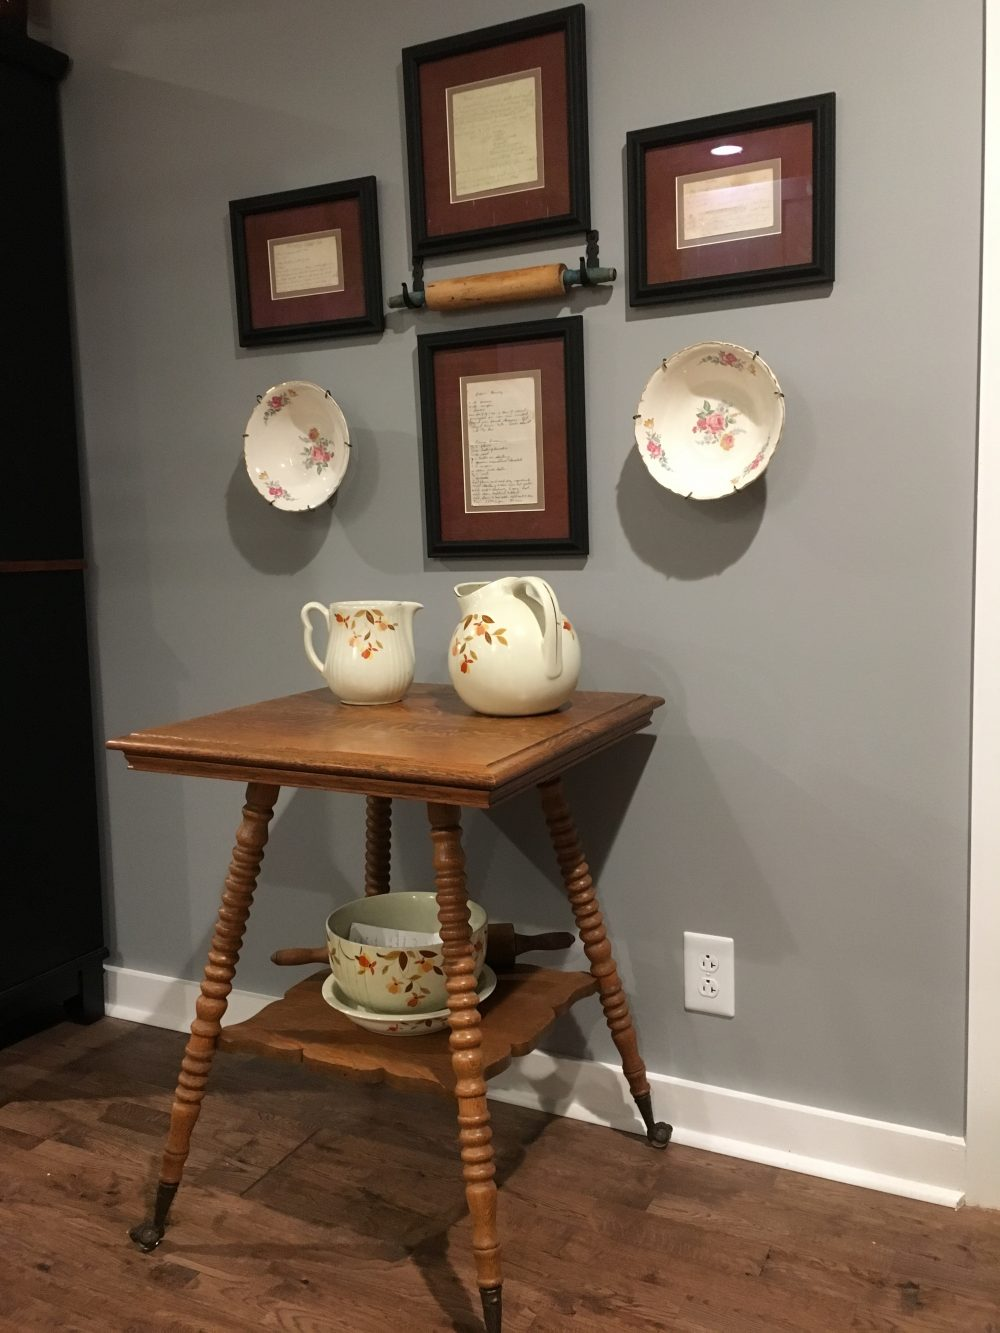 Brenda - A display of family heirlooms